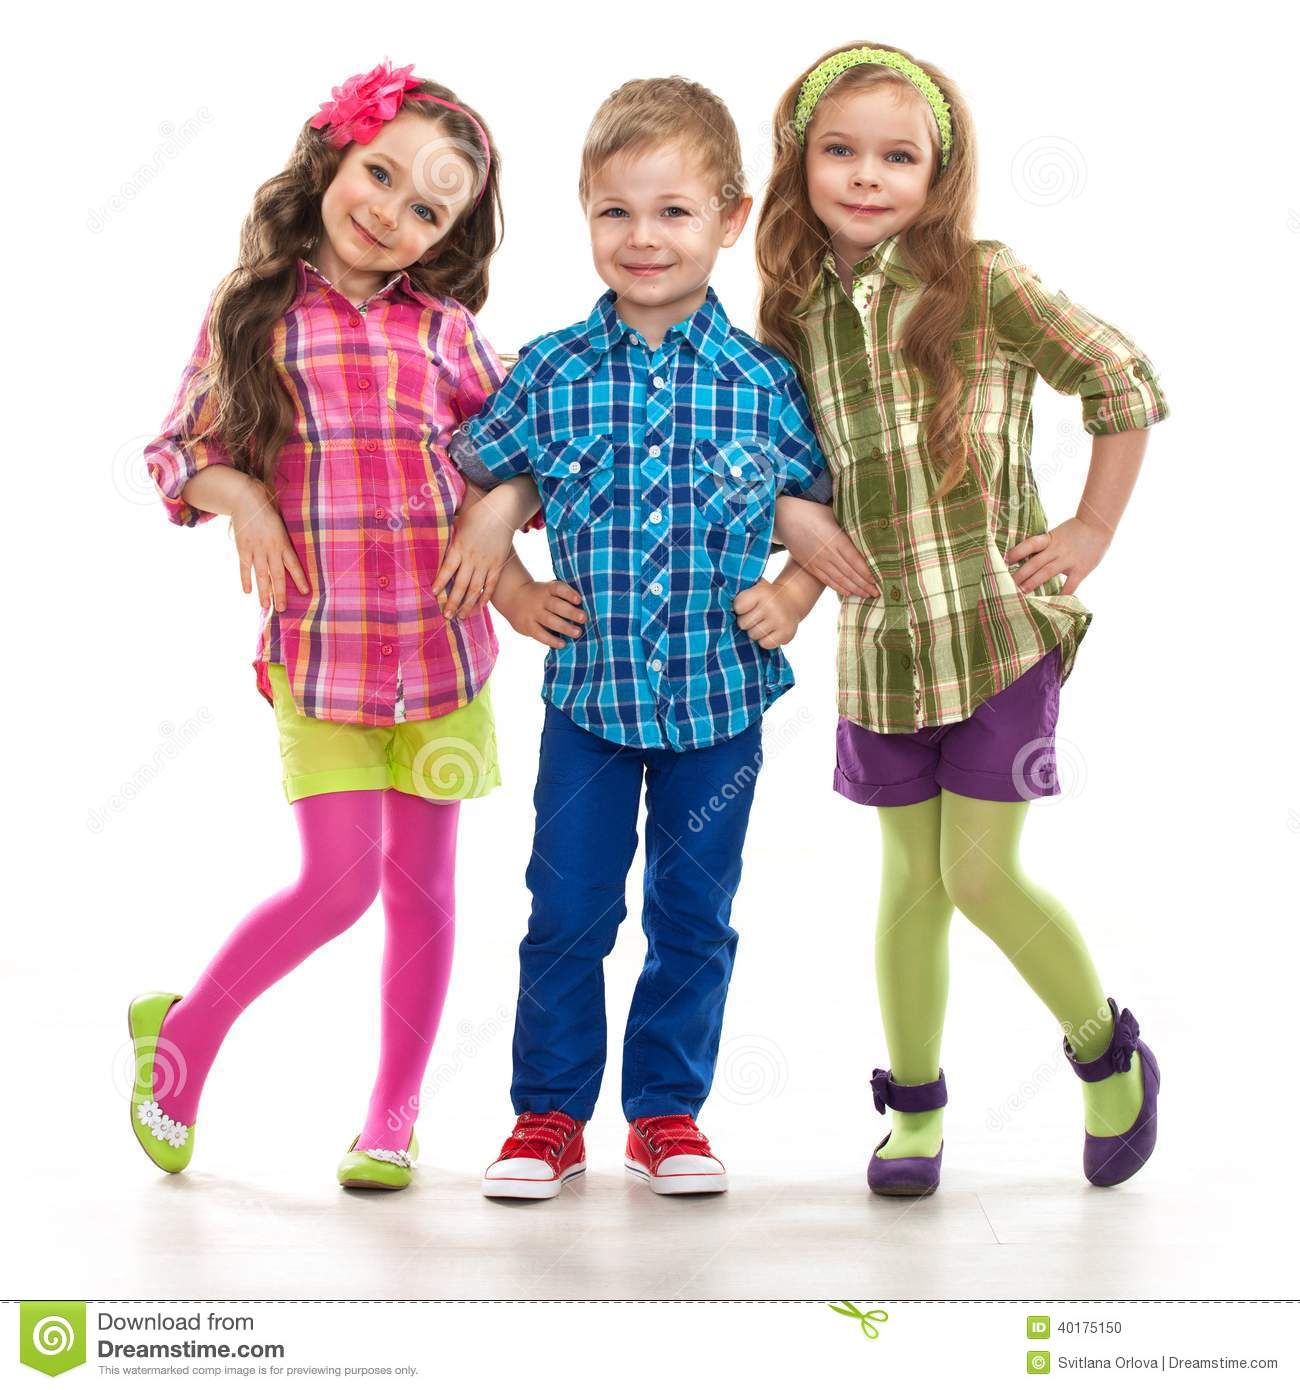 2cedd3bdcc3 Cute fashion kids are standing together, on the white background .  Fashionable and friendship concept